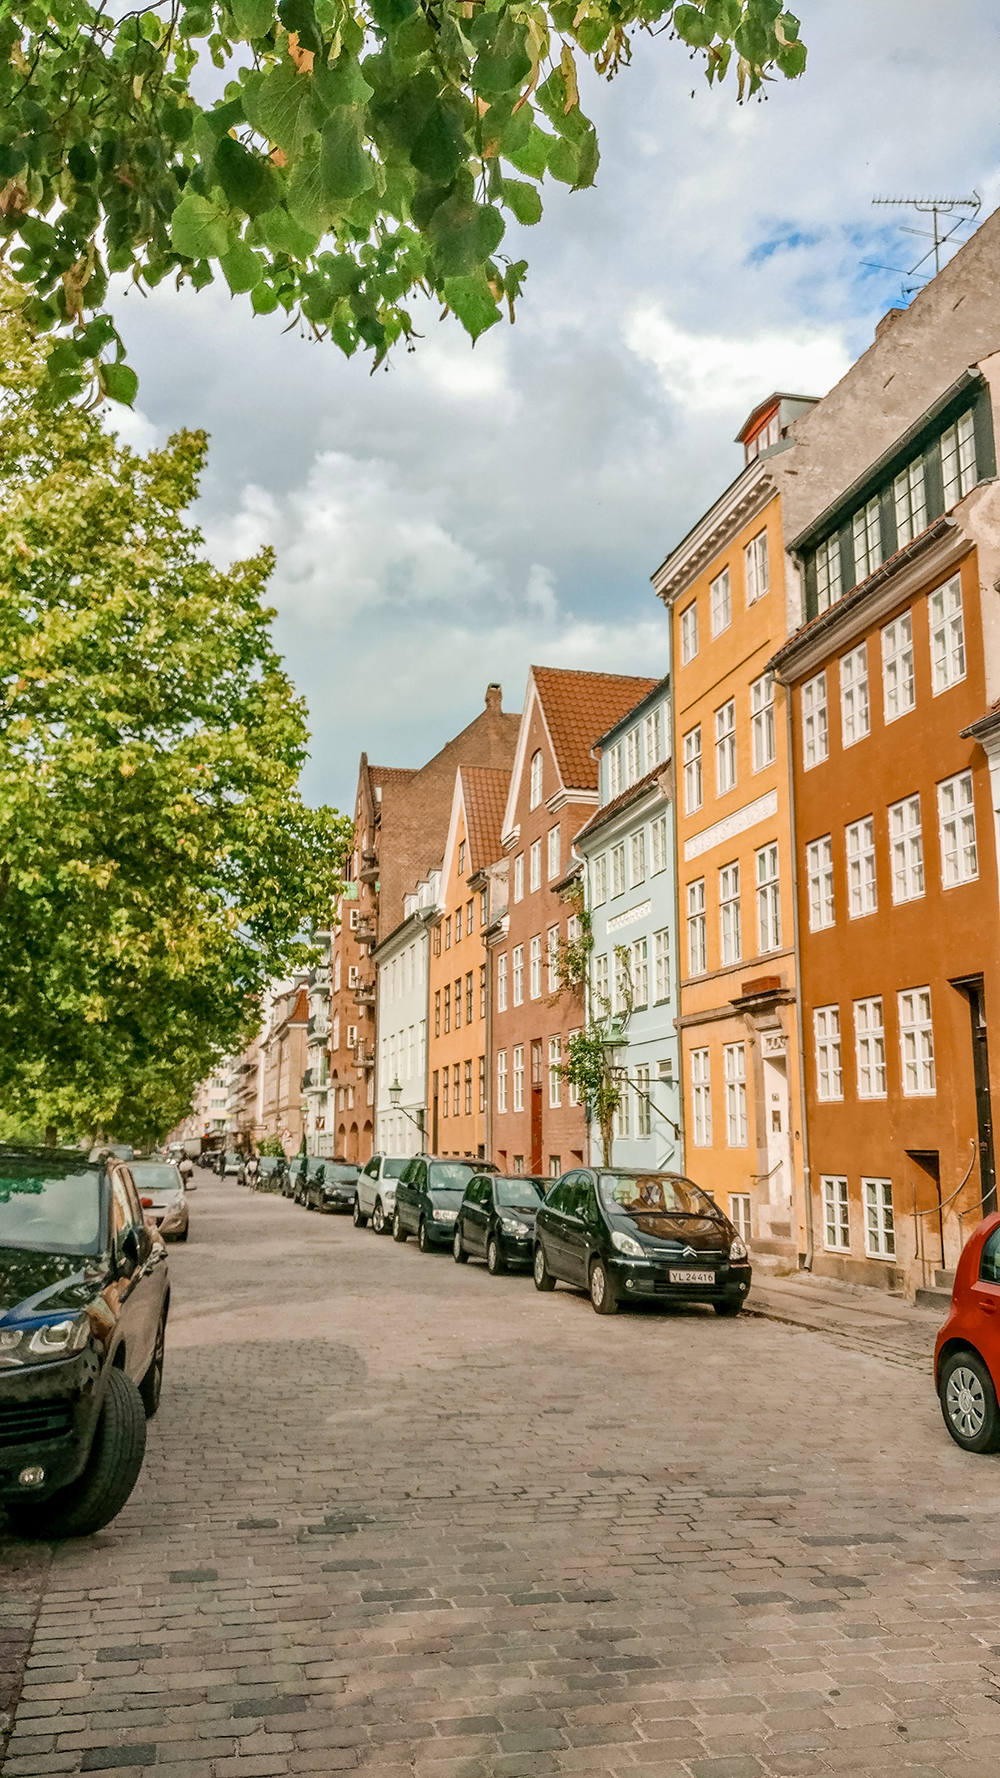 Christianshavn - Copenhagen 3-day travel itinerary | Aliz's Wonderland